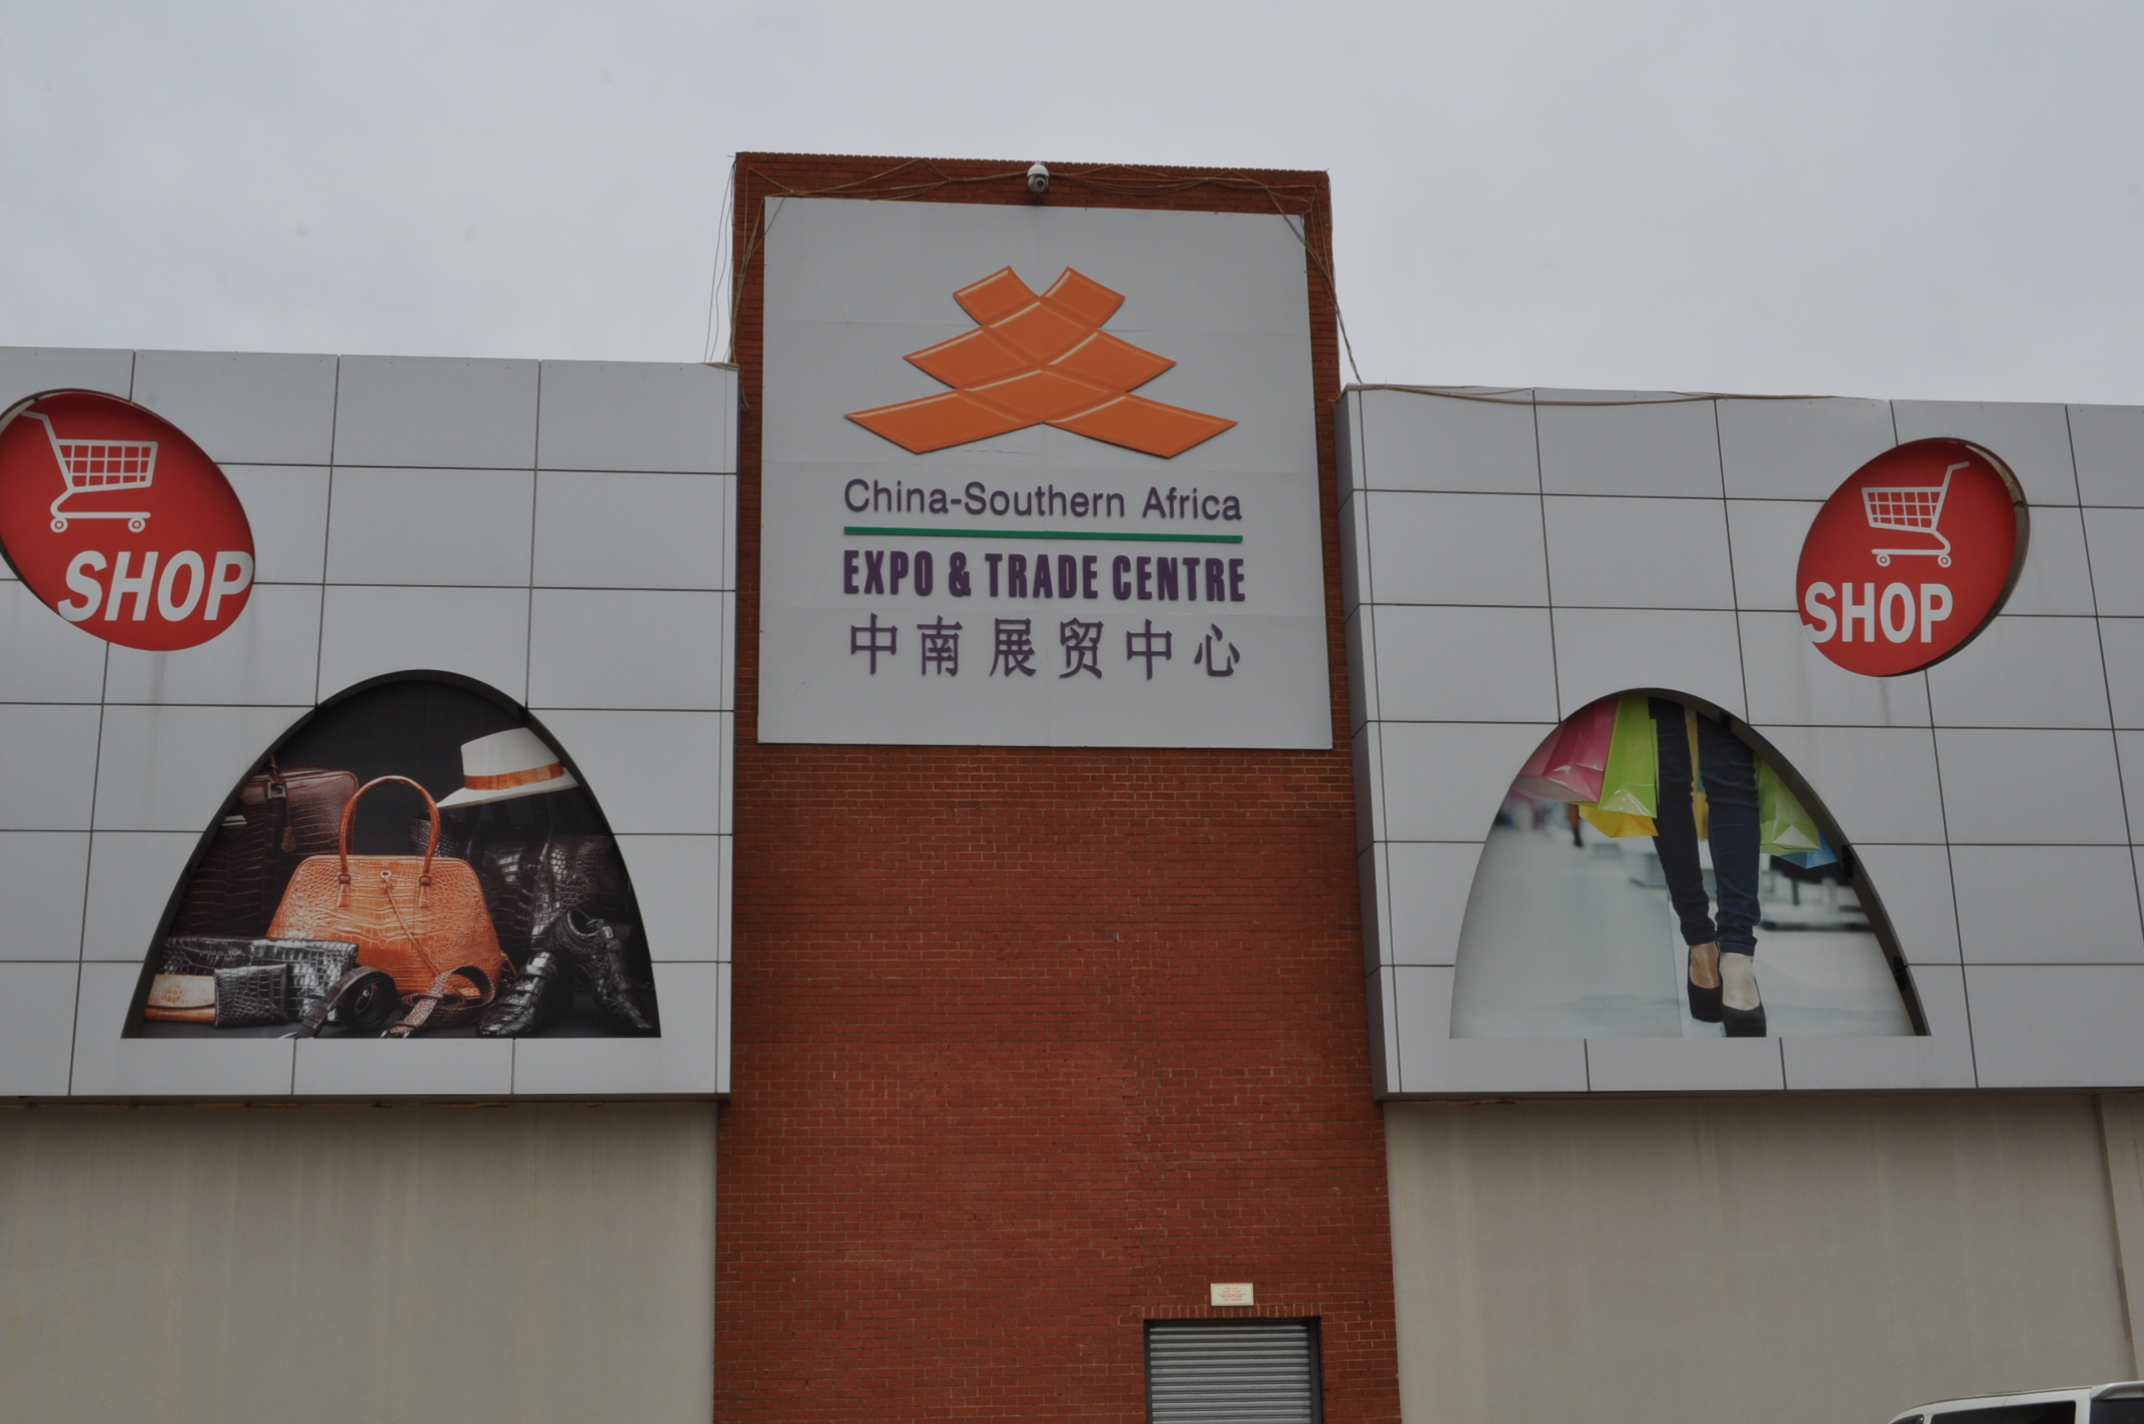 China Southern Africa Expo and Trade Centre is the home for Africa Hub.